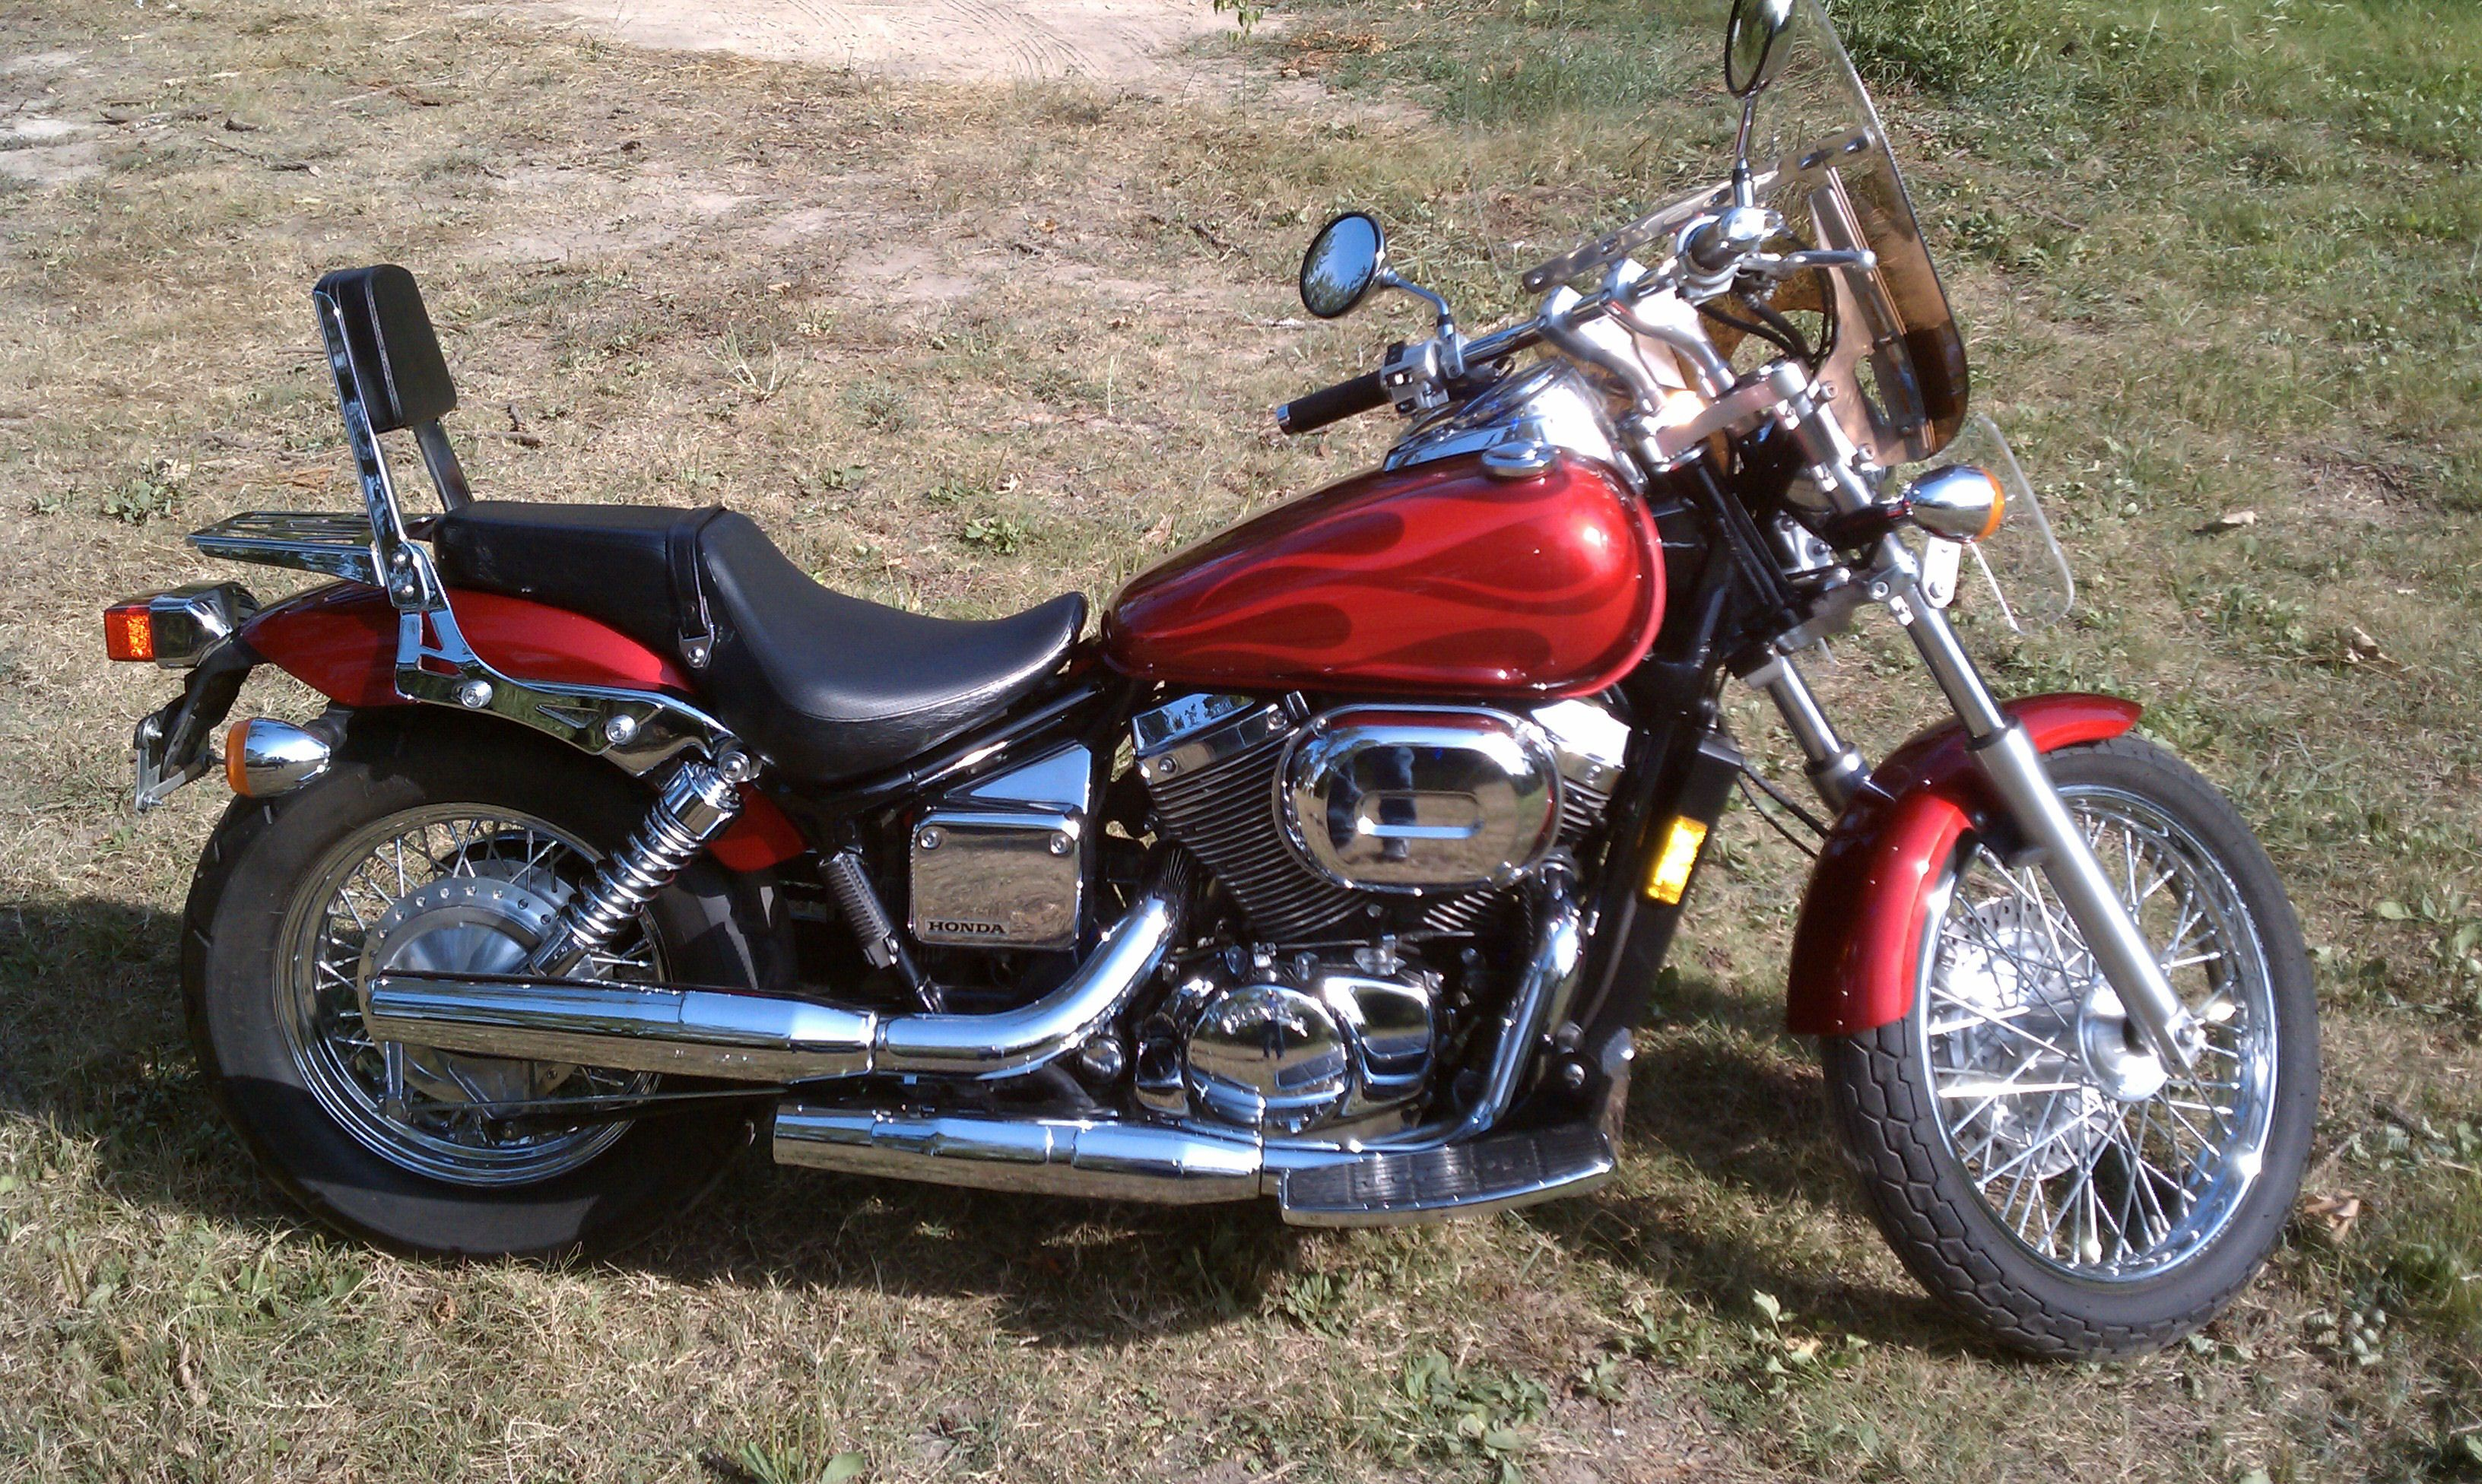 Pin by Ronald Franklin on My Rides - Past & Present | Honda shadow